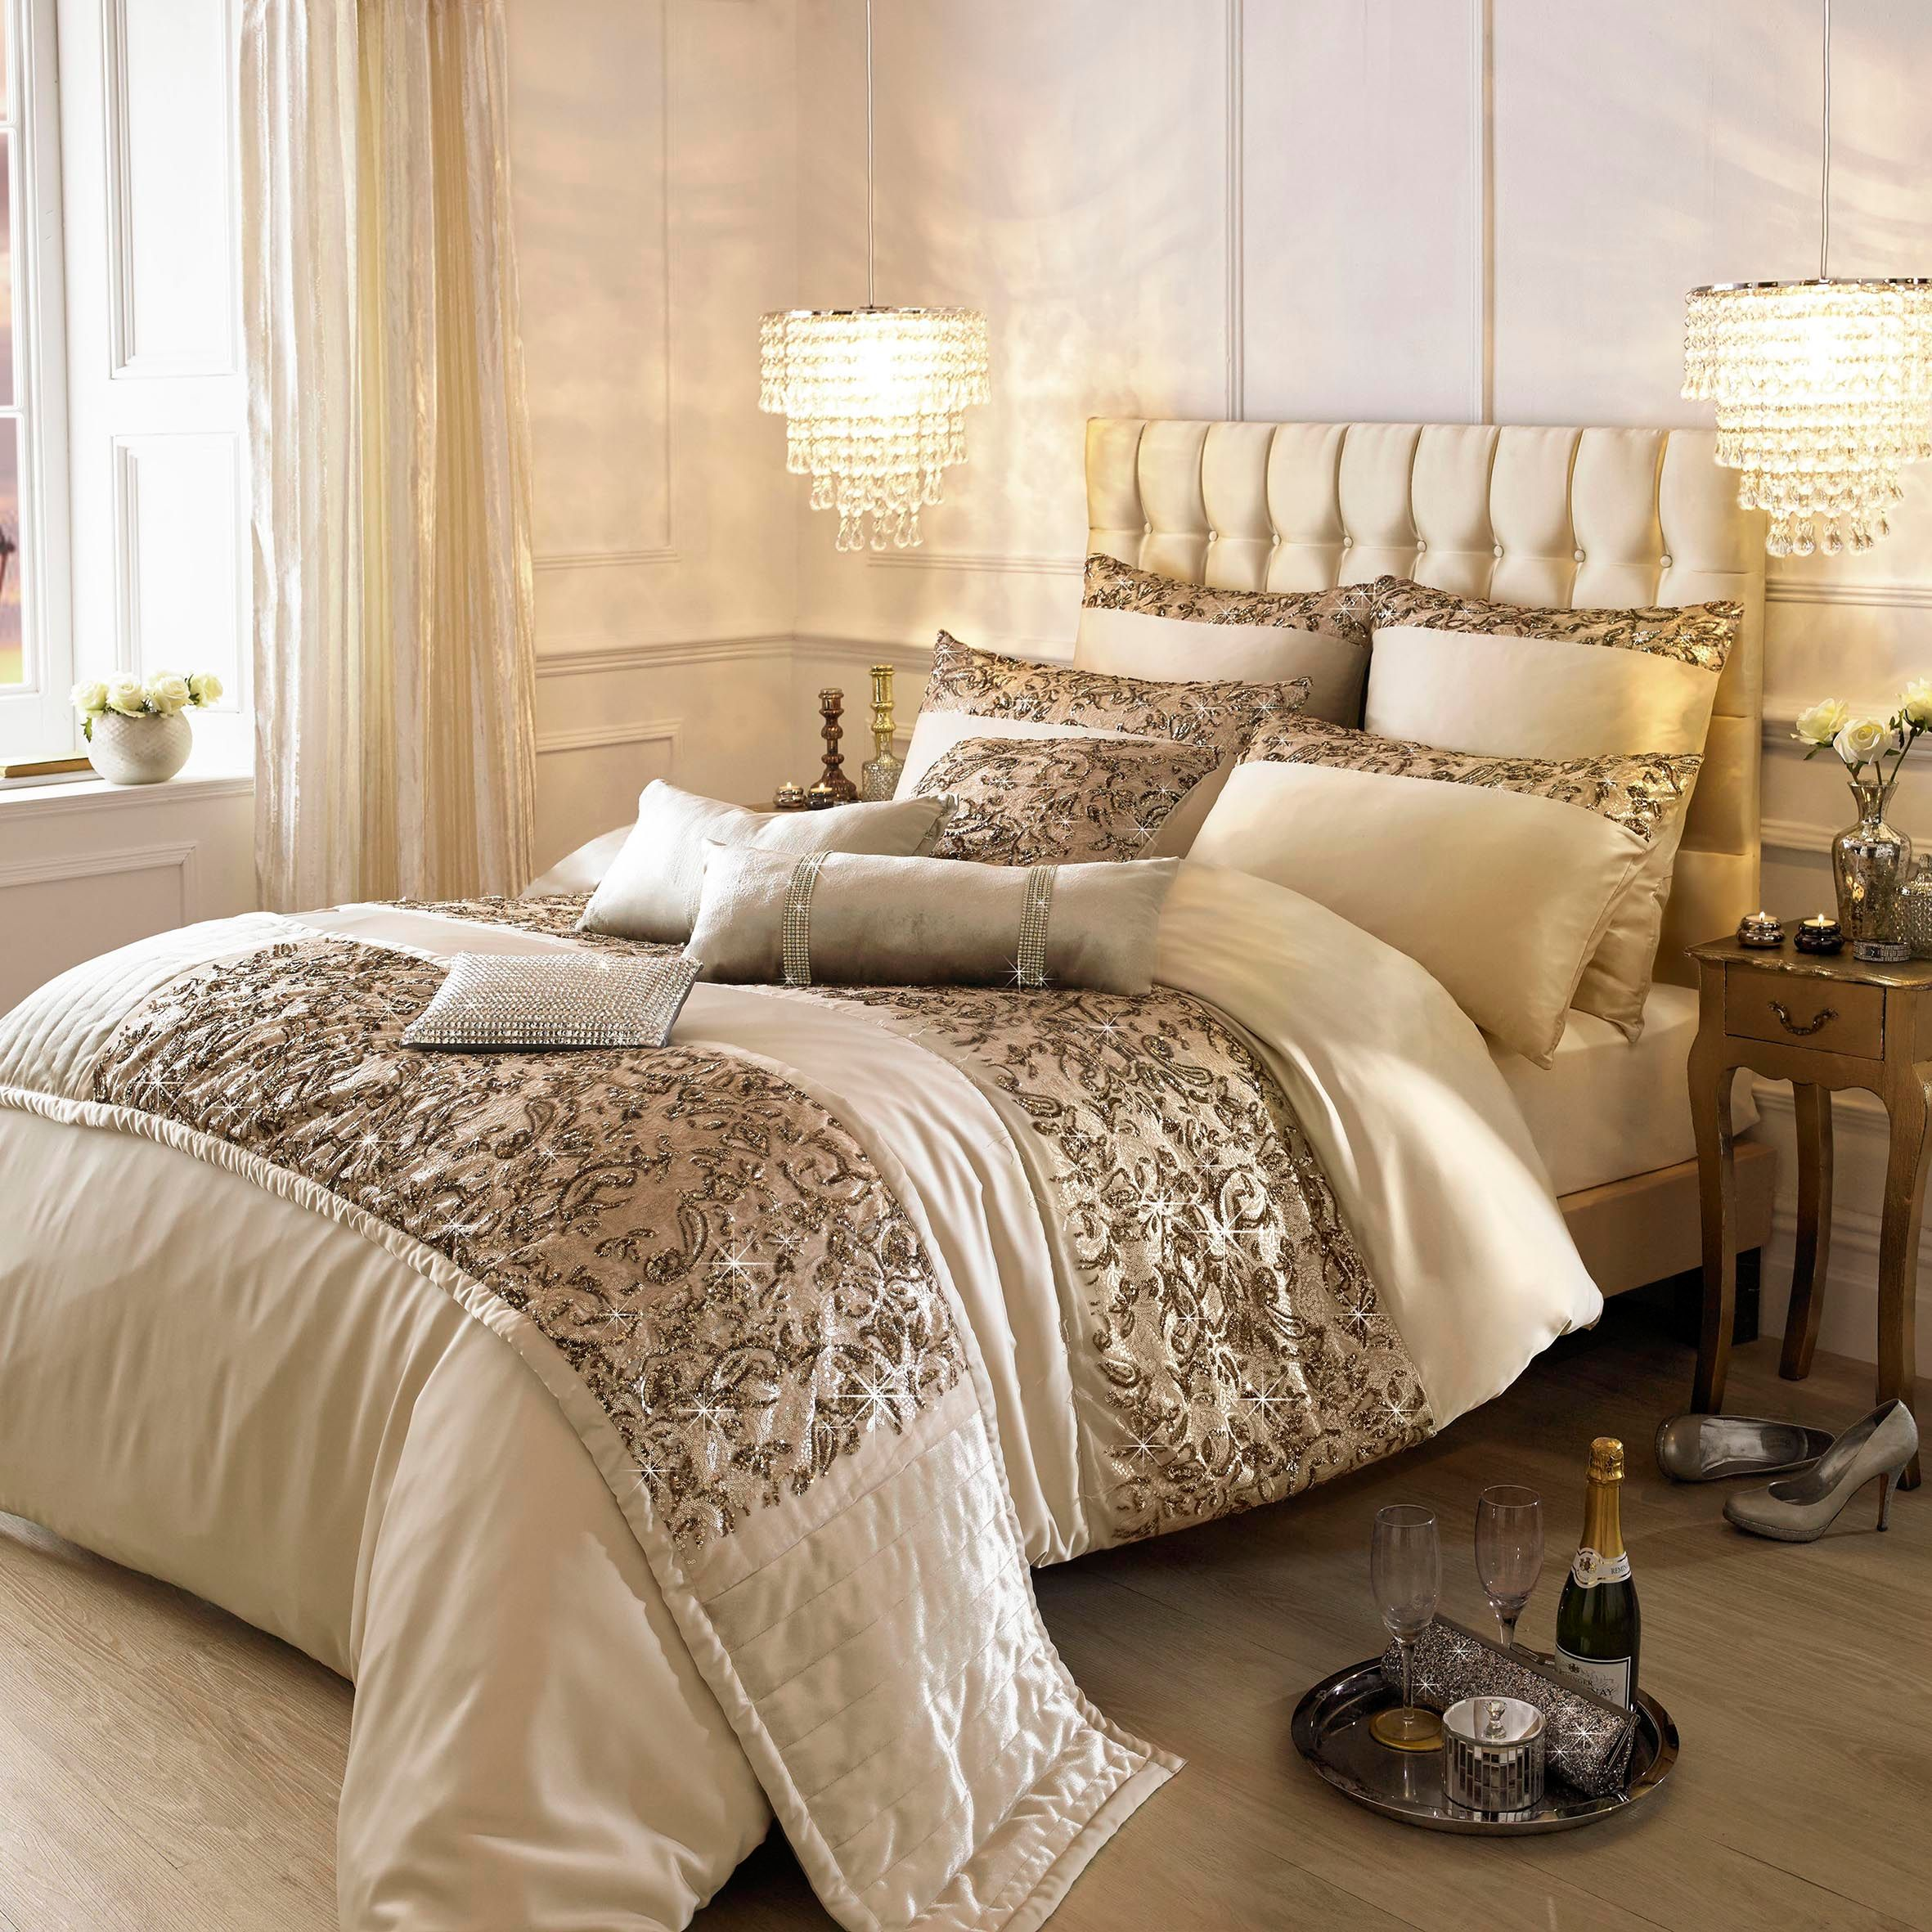 kylie minogue alexa gold super king duvet cover  house of fraser -